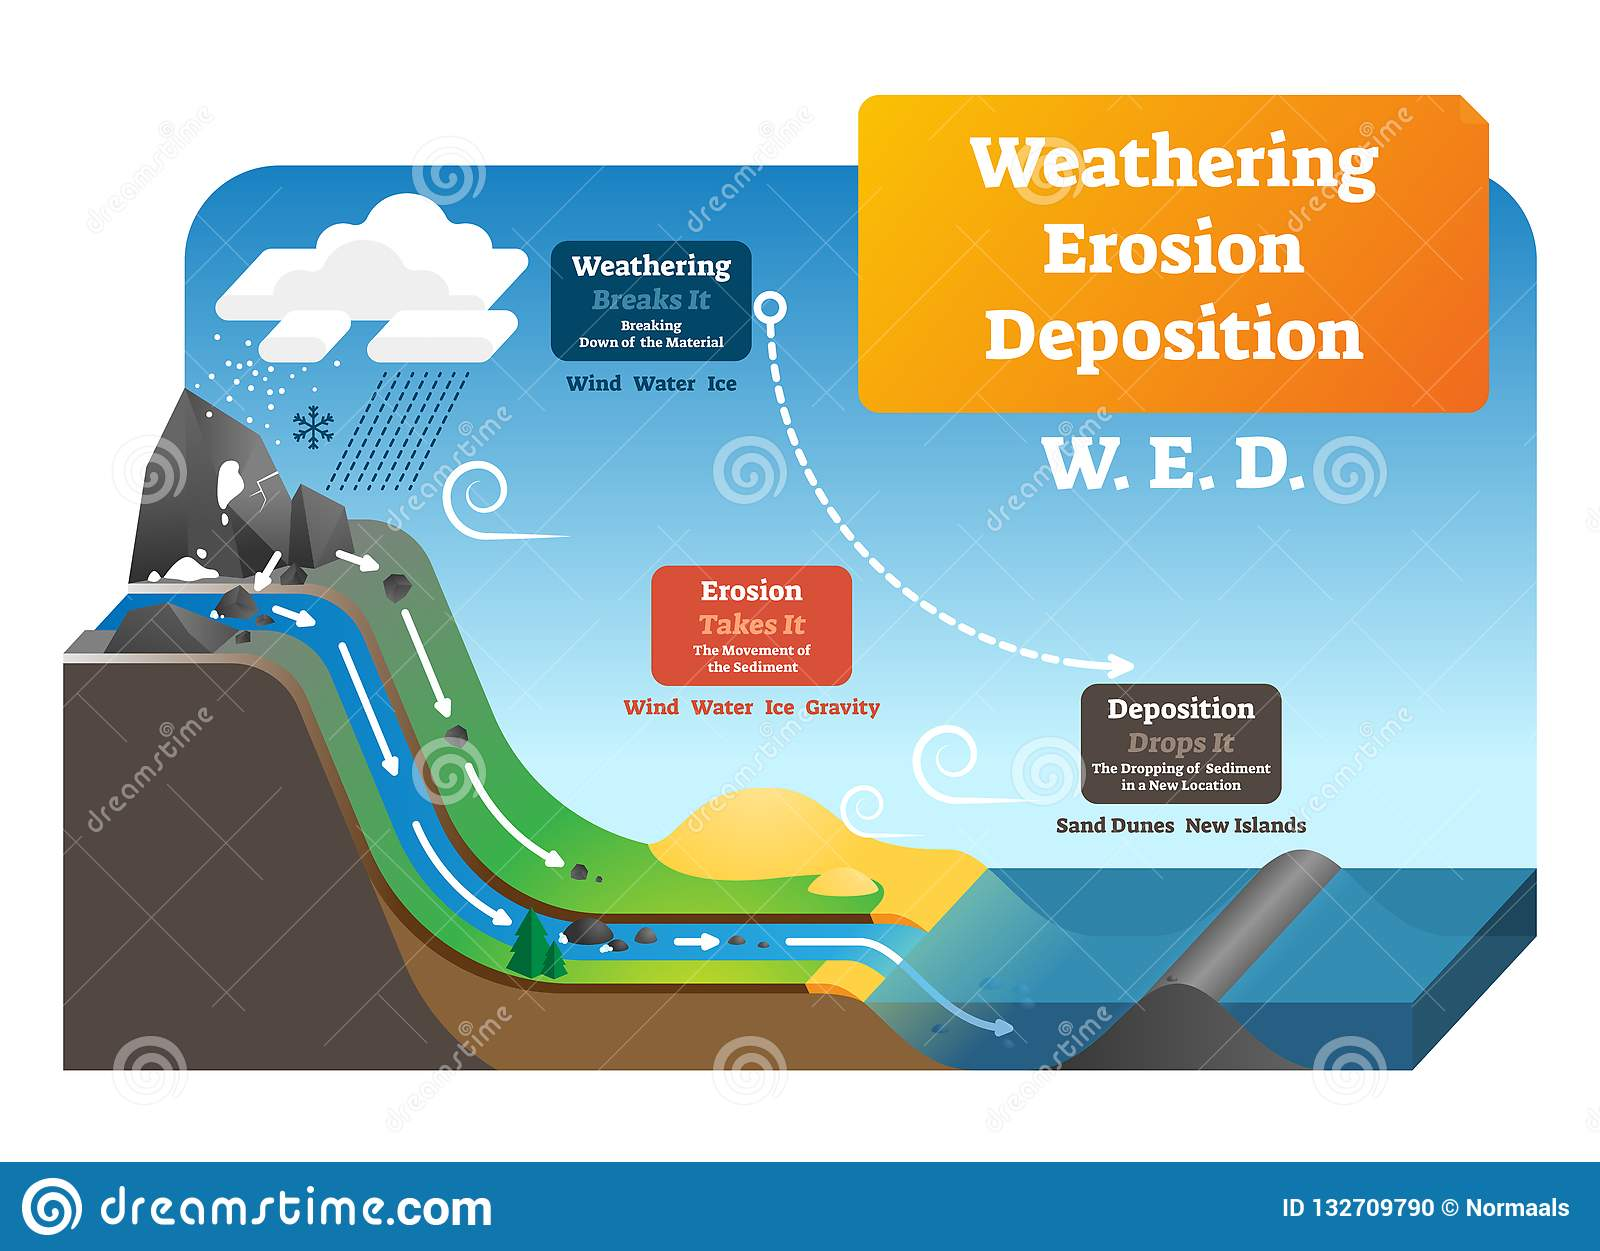 Weathering Erosion Deposition Vector Illustration Labeled